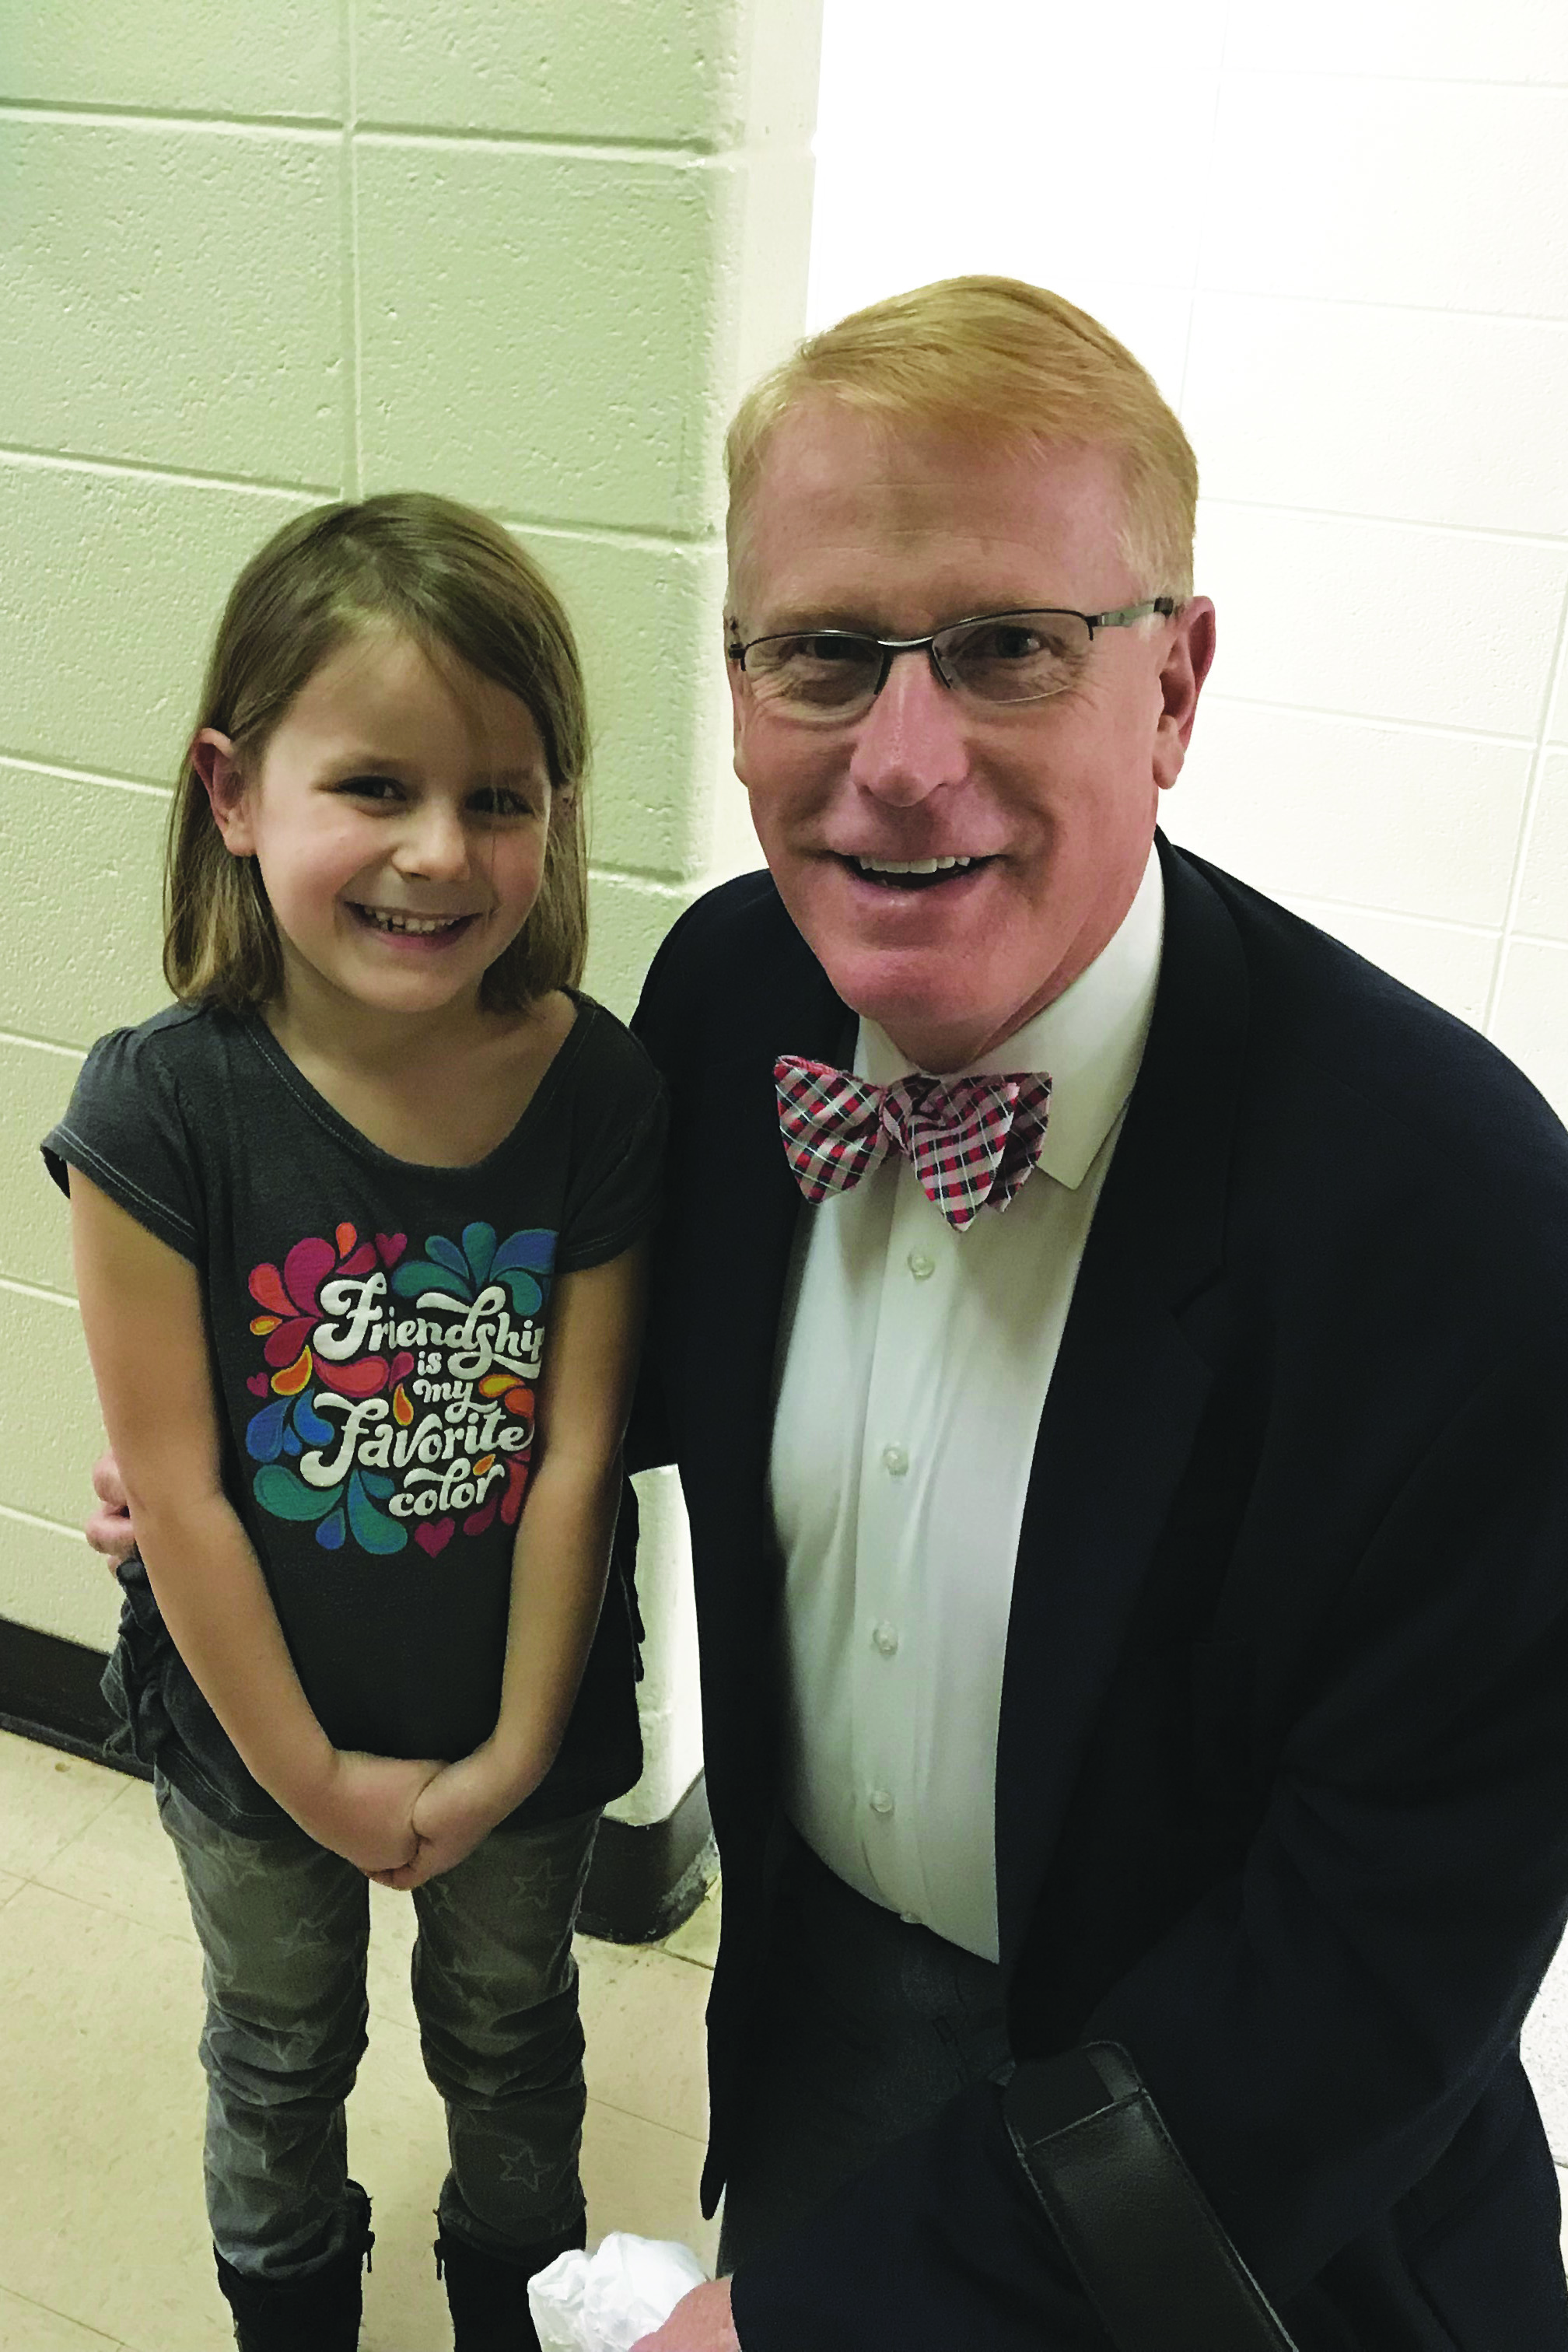 Superintendent of Schools Dr. Brian V. Hightower shares a smile with preK student Kennedy Philpot.